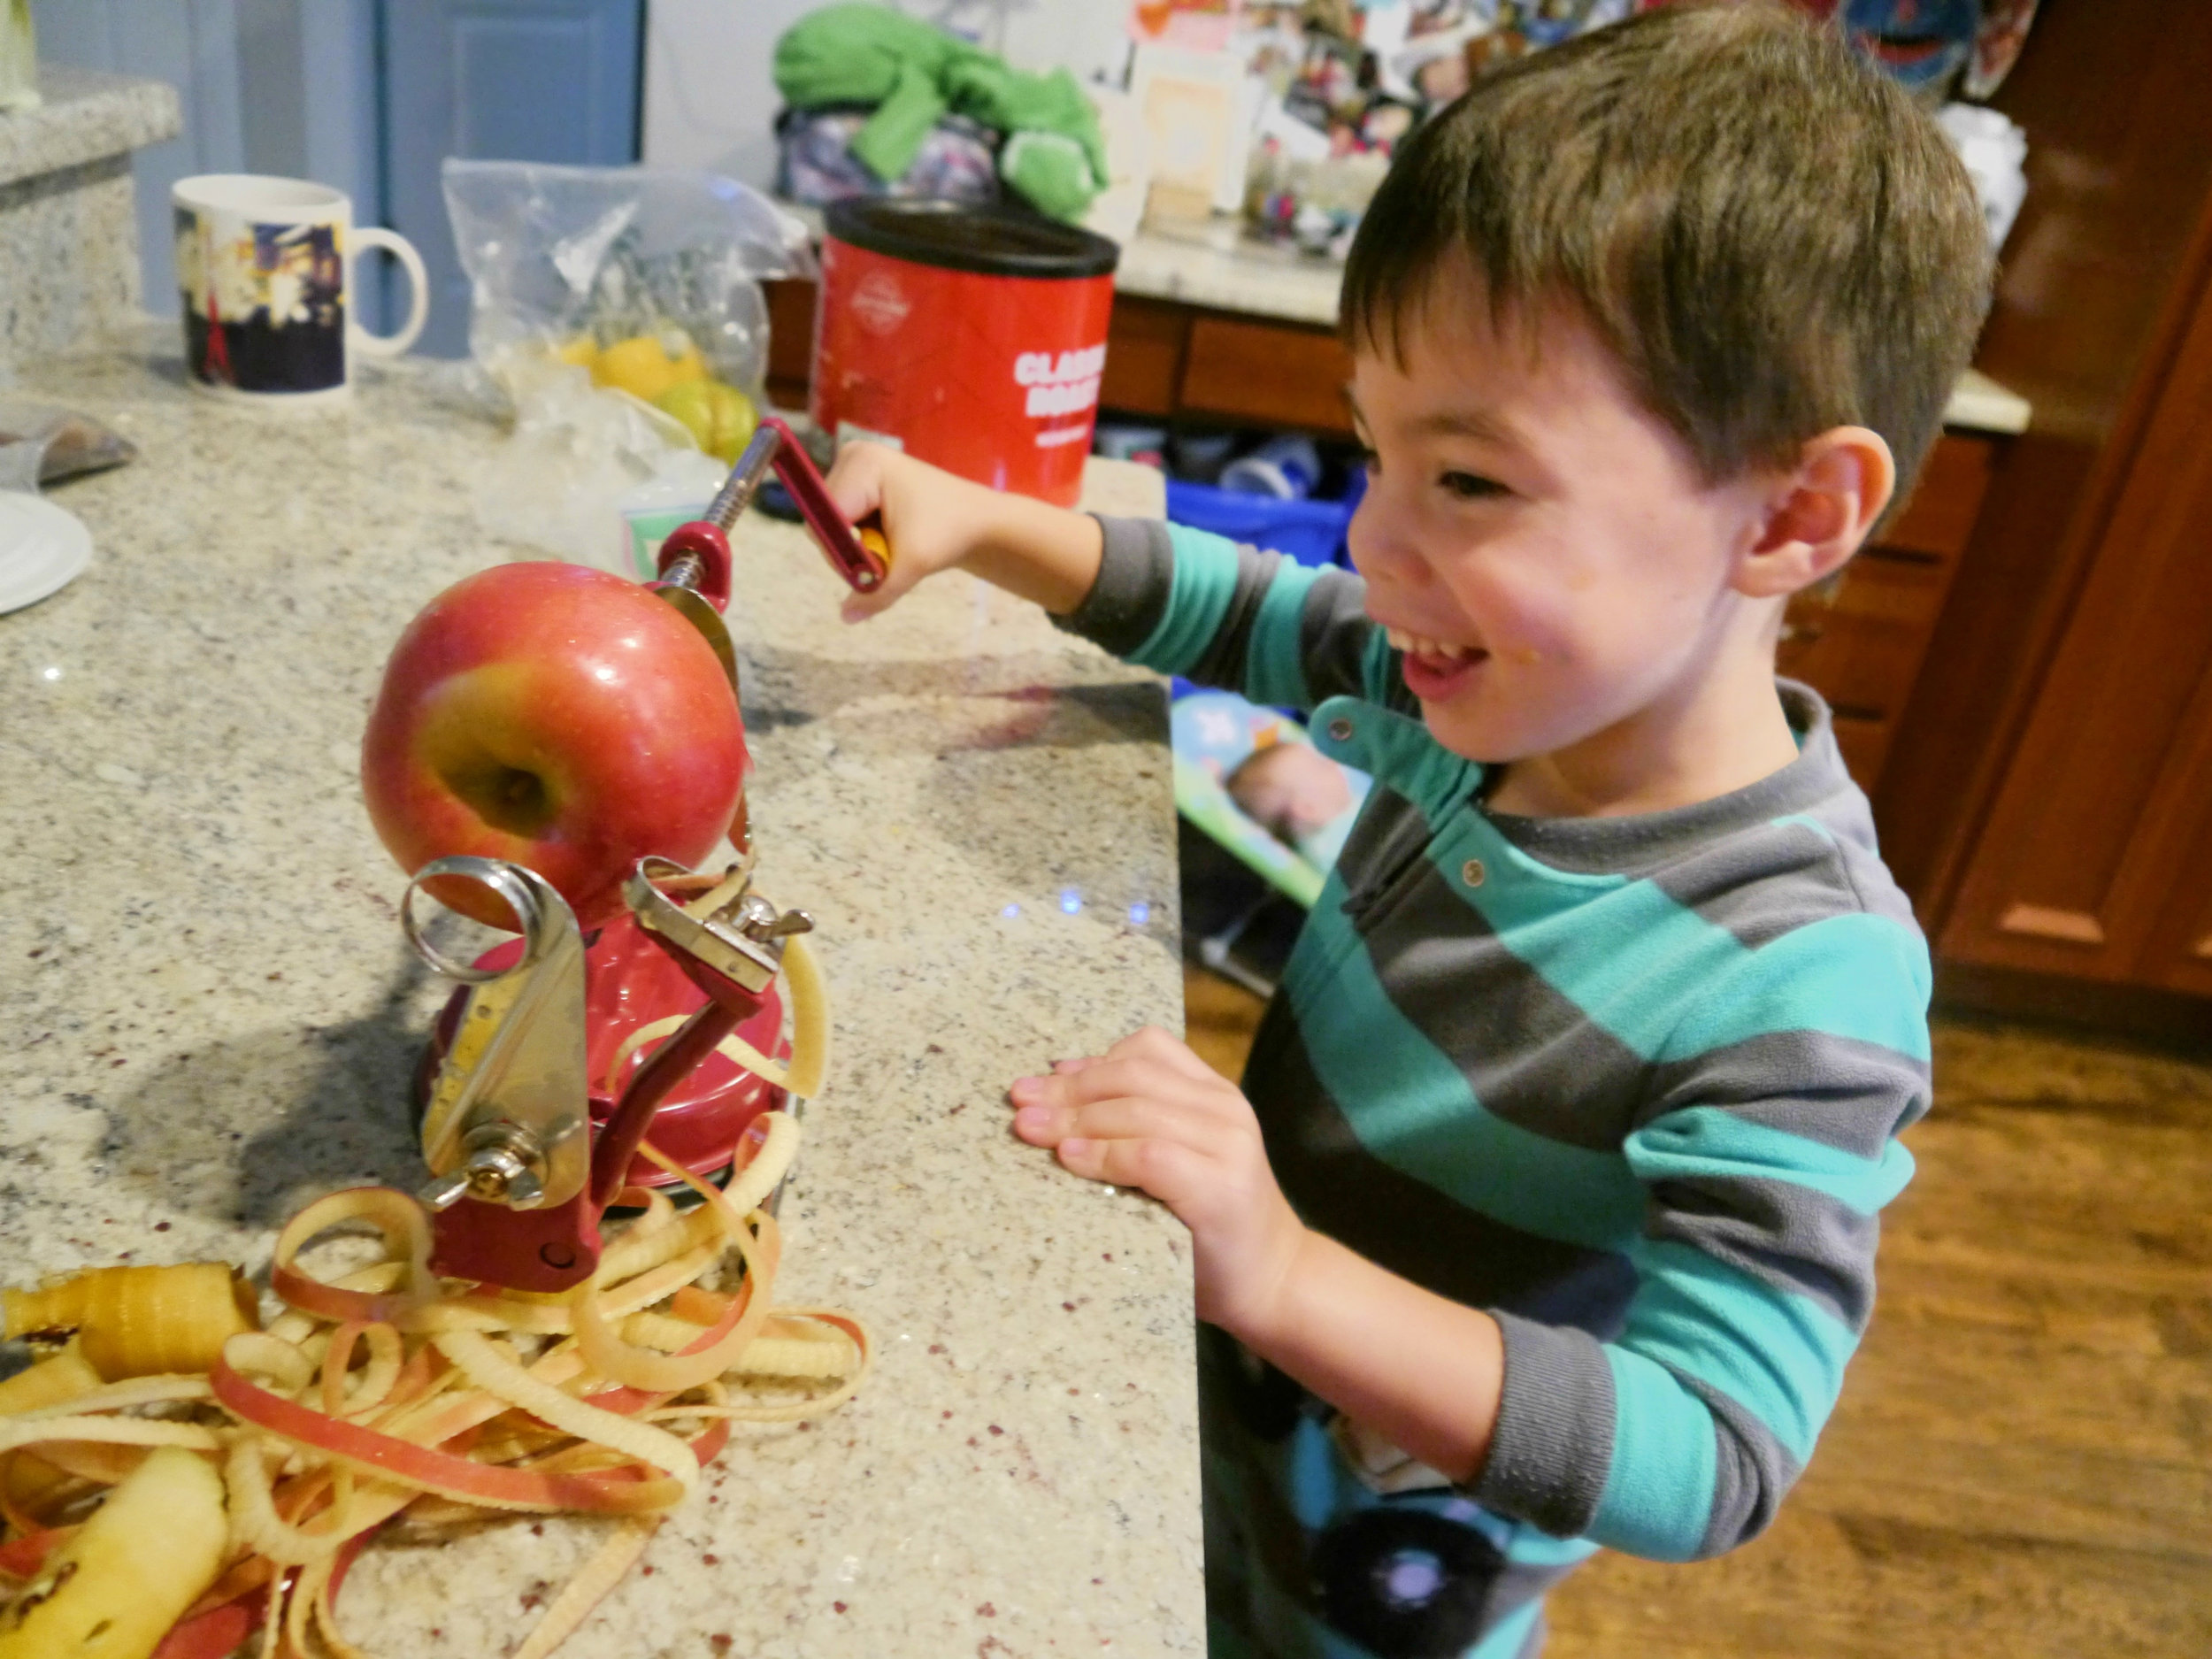 """A few years ago I bought this apple corer, peeler, slicer, which is one of the few uni-taskers allowed in my kitchen. I'm so glad I have it. This was Emmett's first time using it and he thoroughly enjoyed the experience. Isla was able to use it too (little miss """"anything you can do I can do better"""" - she's a competitive little bugger). They made quick work of 4 apples."""